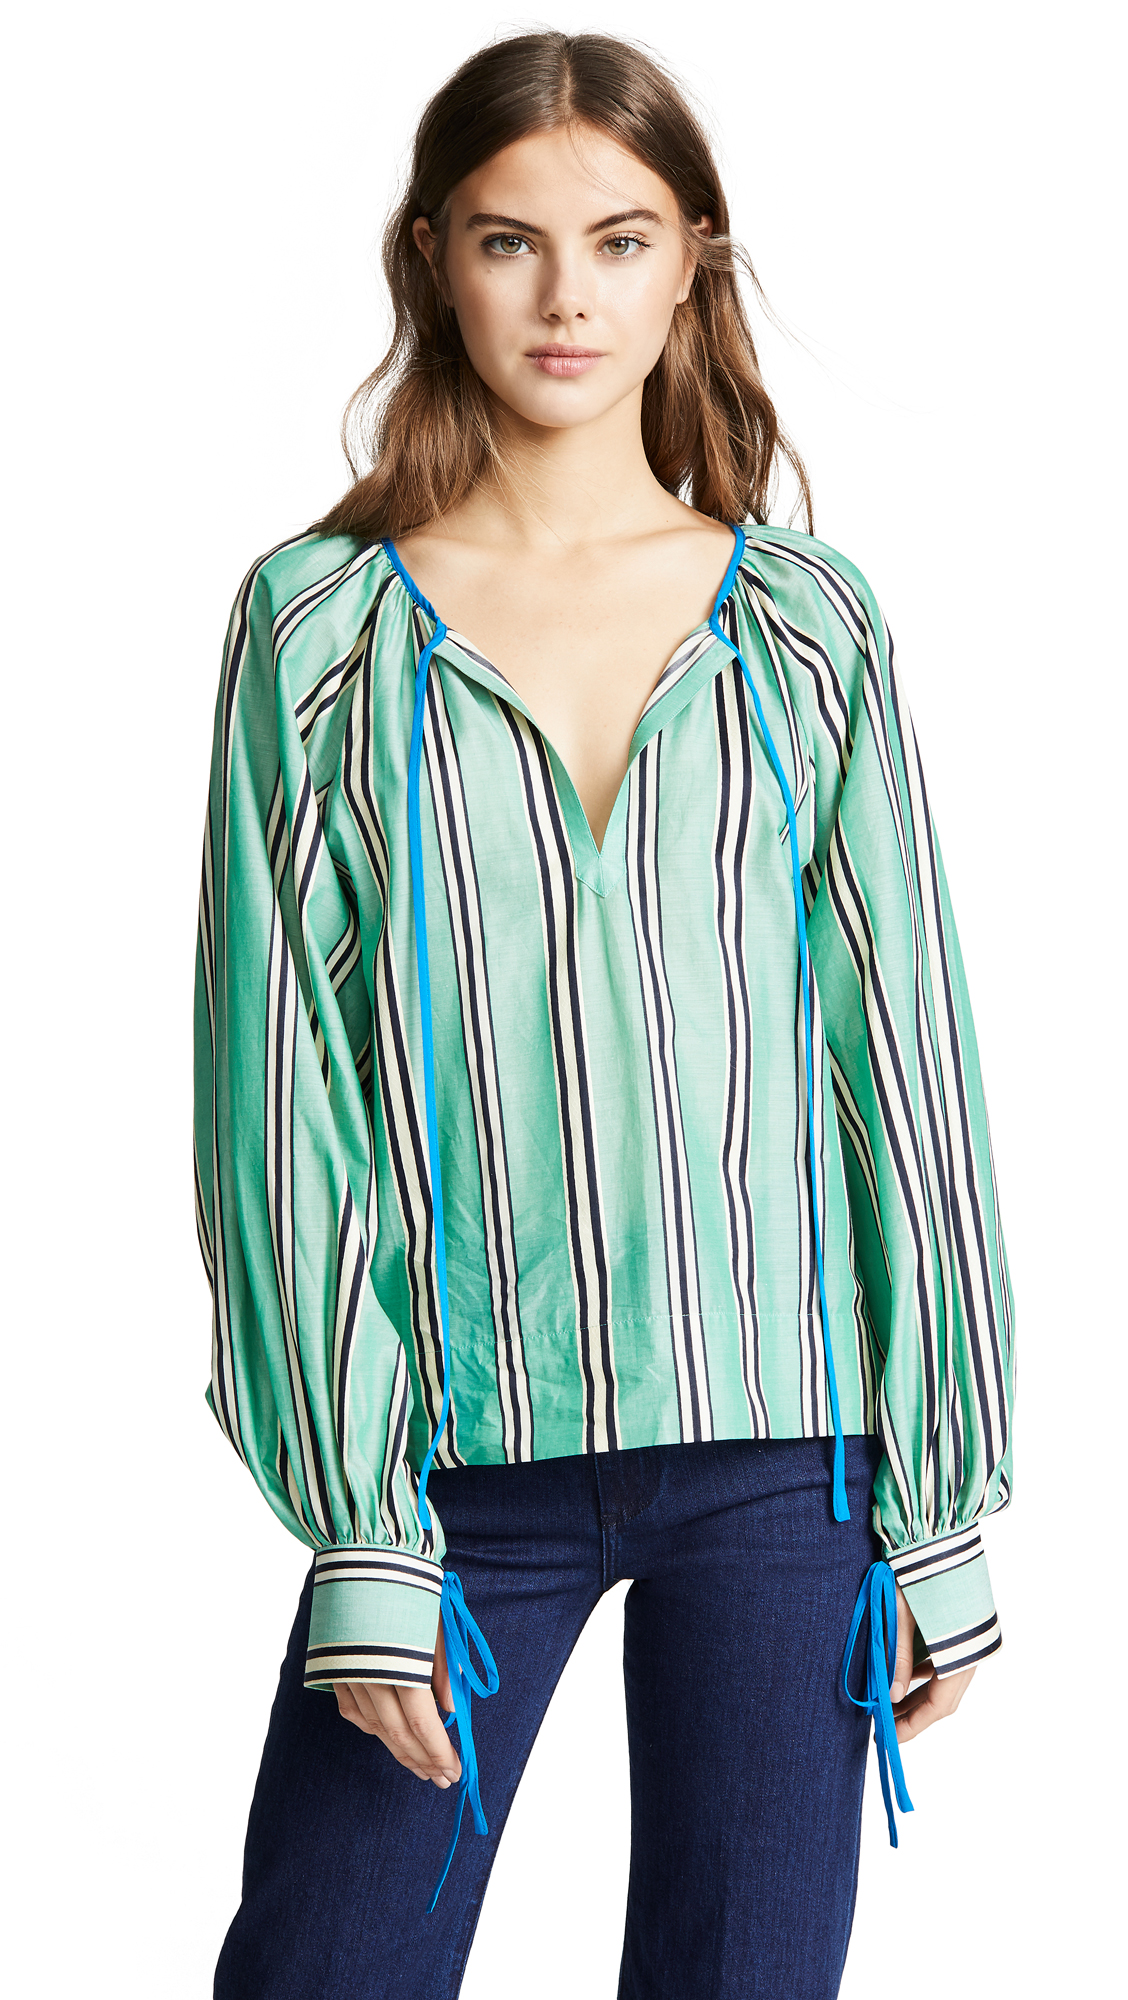 ANNA OCTOBER Striped Tie Neck Blouse in Teal Stripe